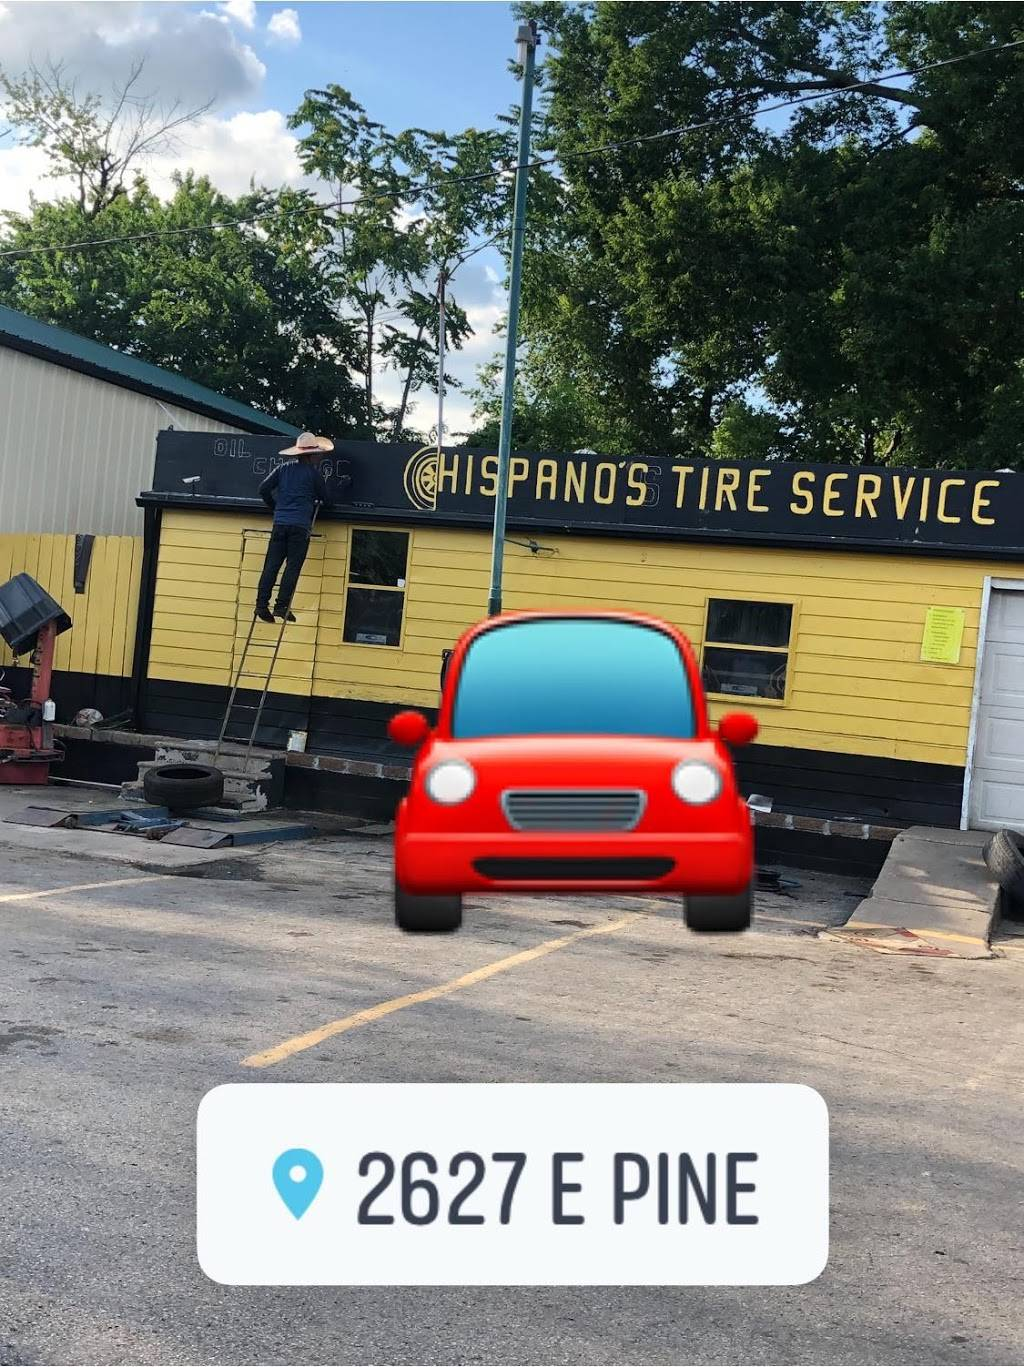 Hispano Tires - car repair  | Photo 1 of 1 | Address: 2627 E Pine St, Tulsa, OK 74110, USA | Phone: (918) 861-4190